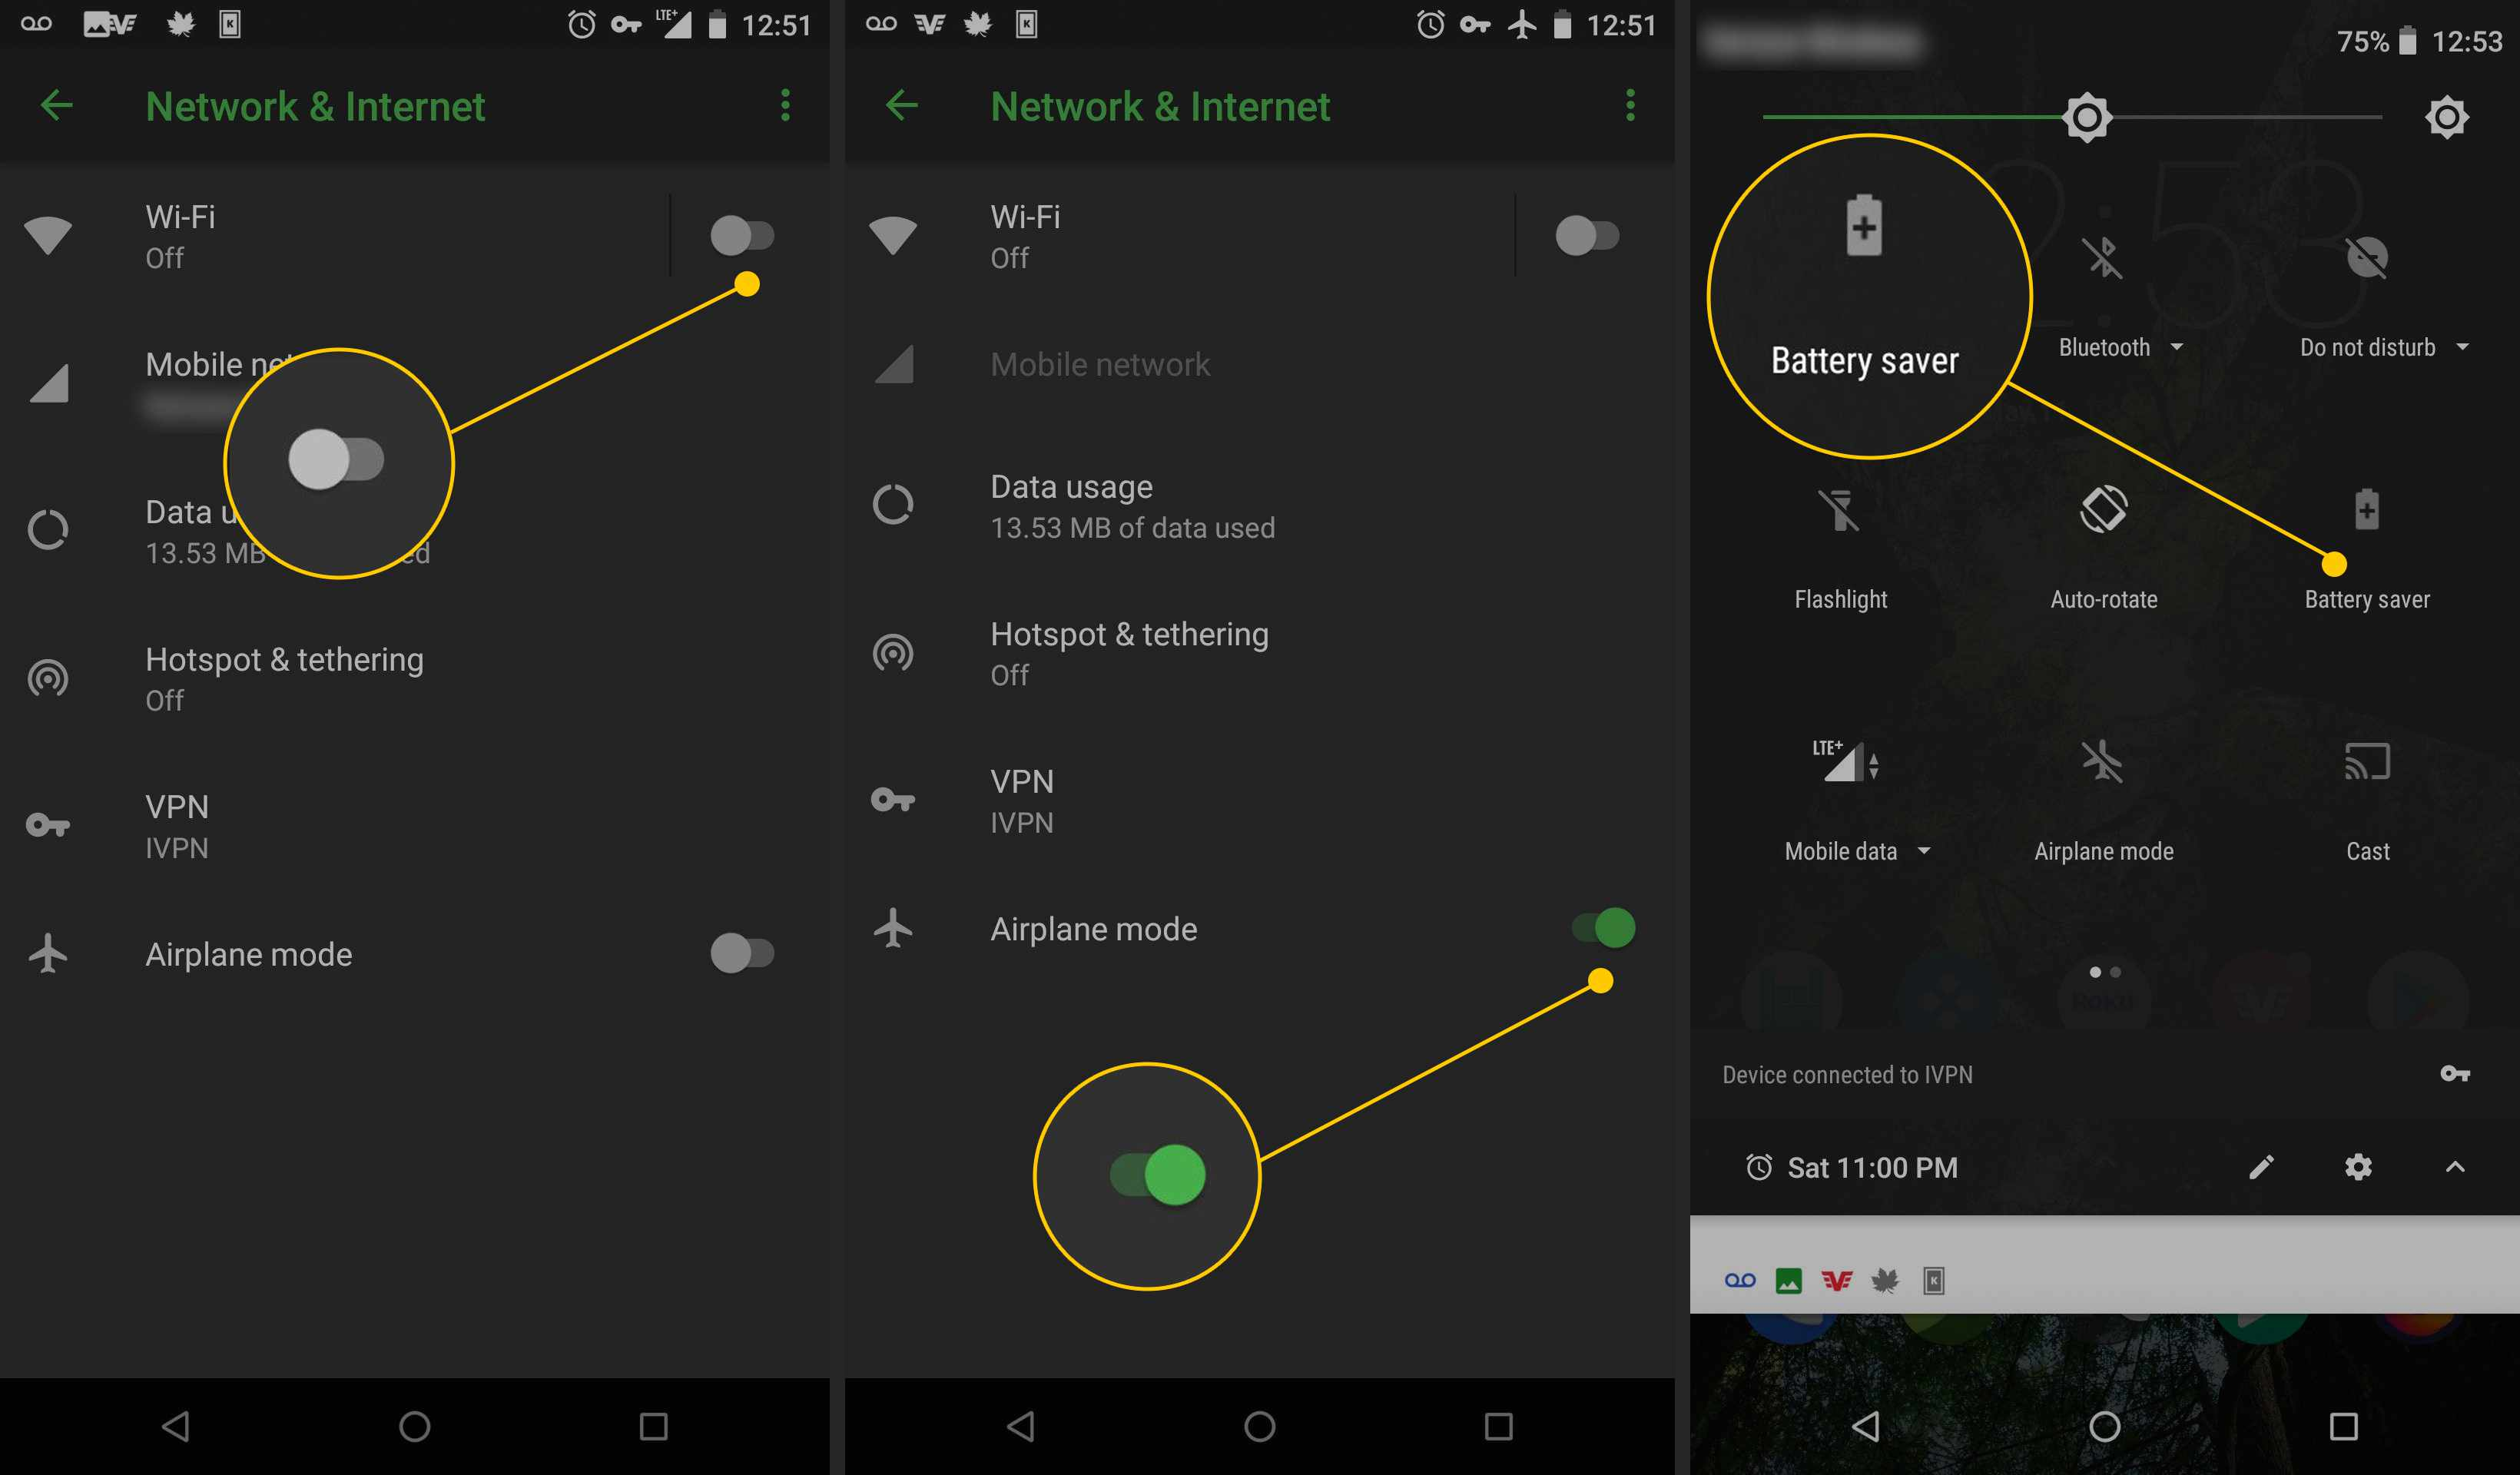 9 Ways to Extend Your Android's Battery Life